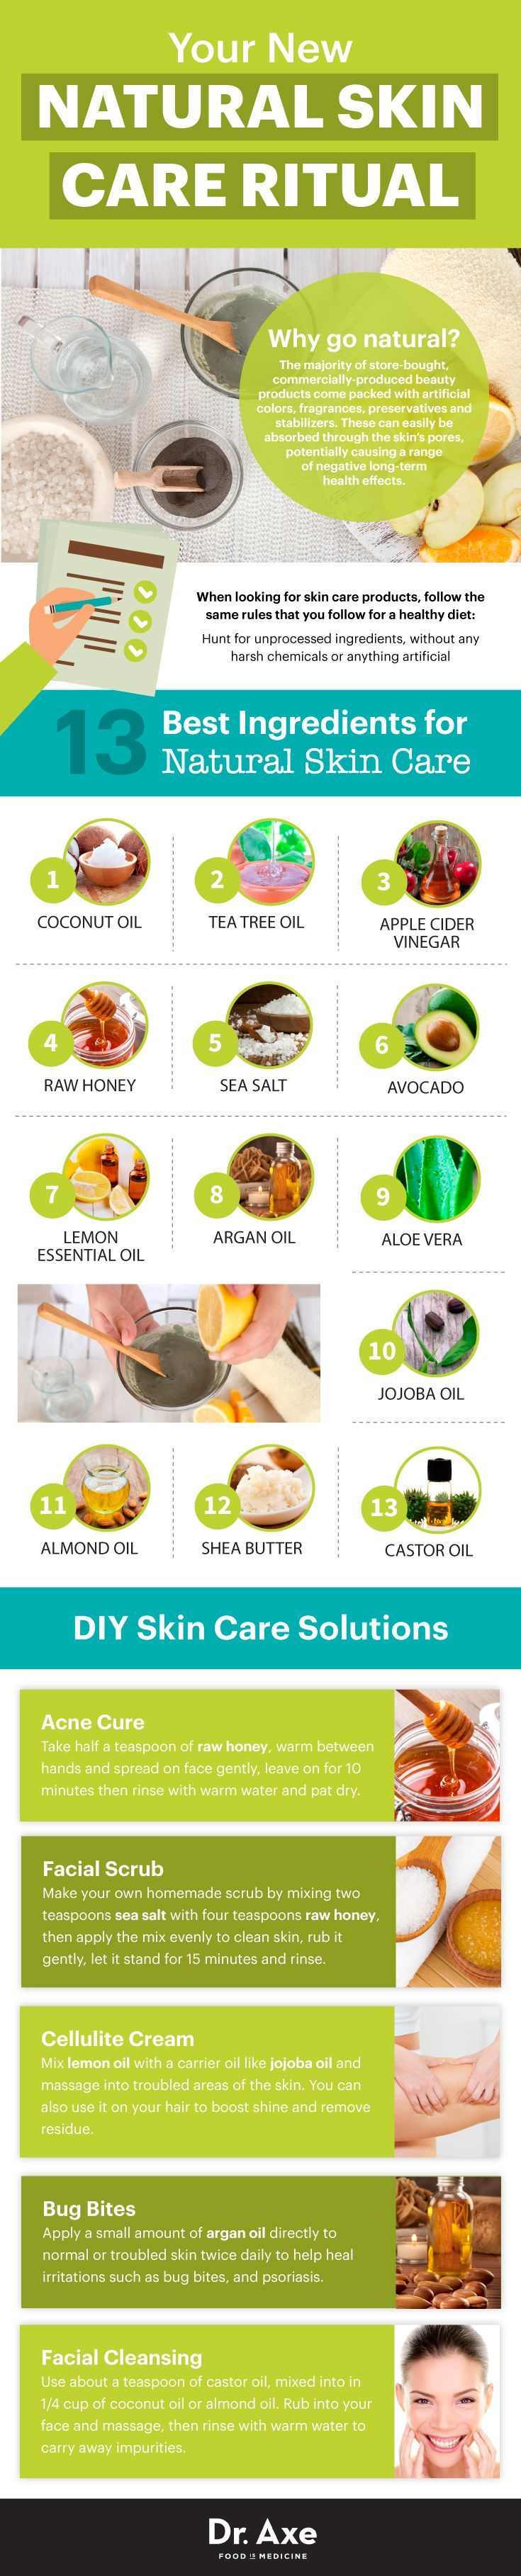 Natural skin care guide - Dr. Axe http://www.draxe.com #health #holistic #natural